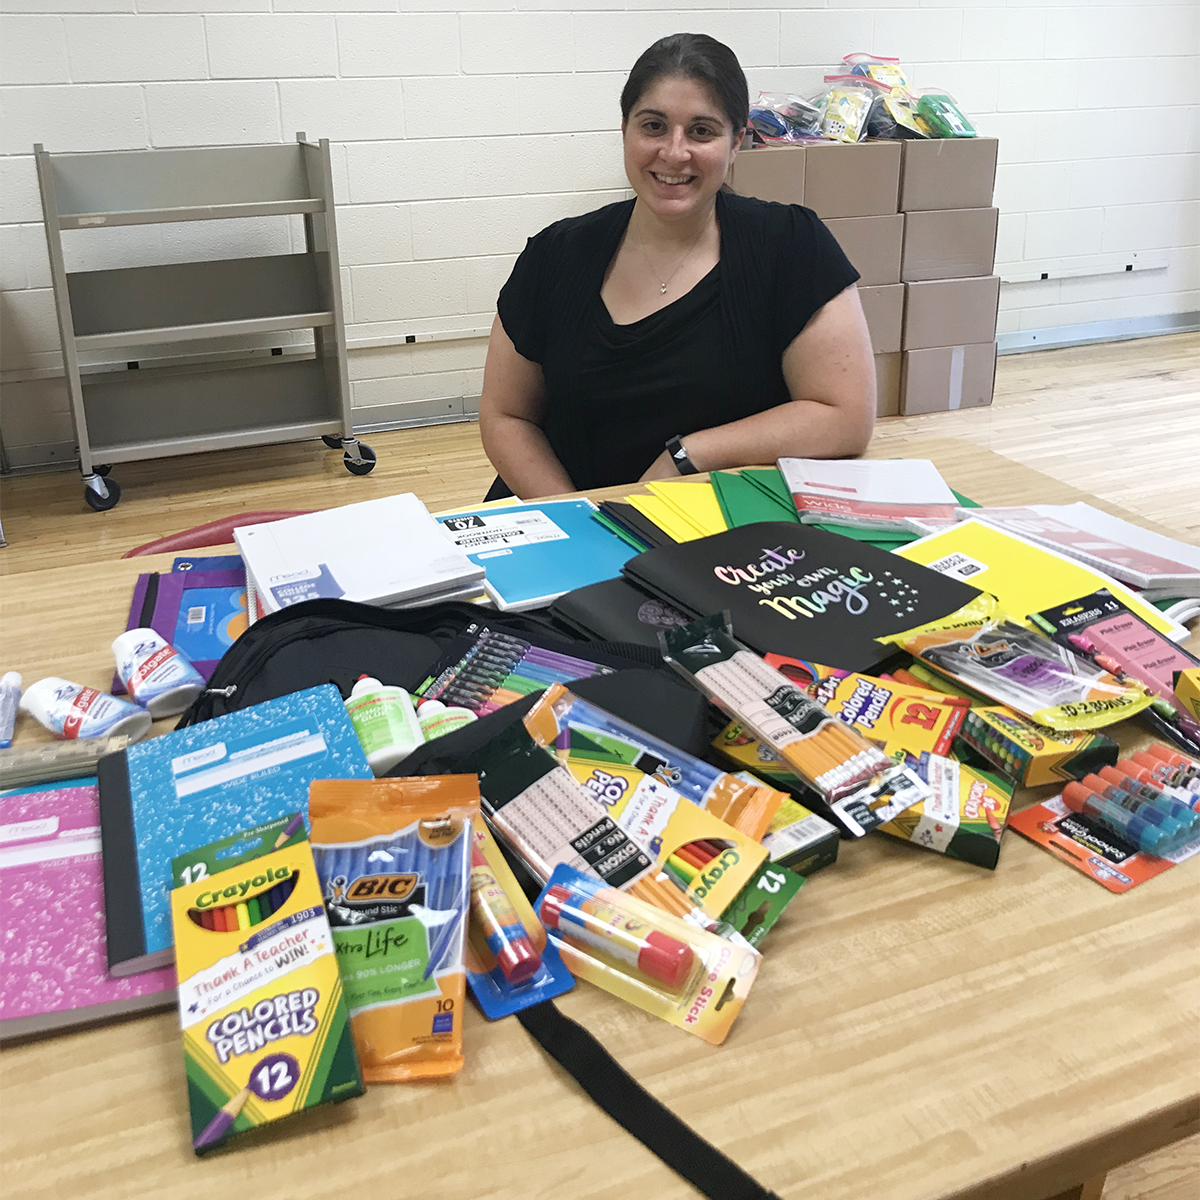 Kathy Hansen Realty donation of school supplies